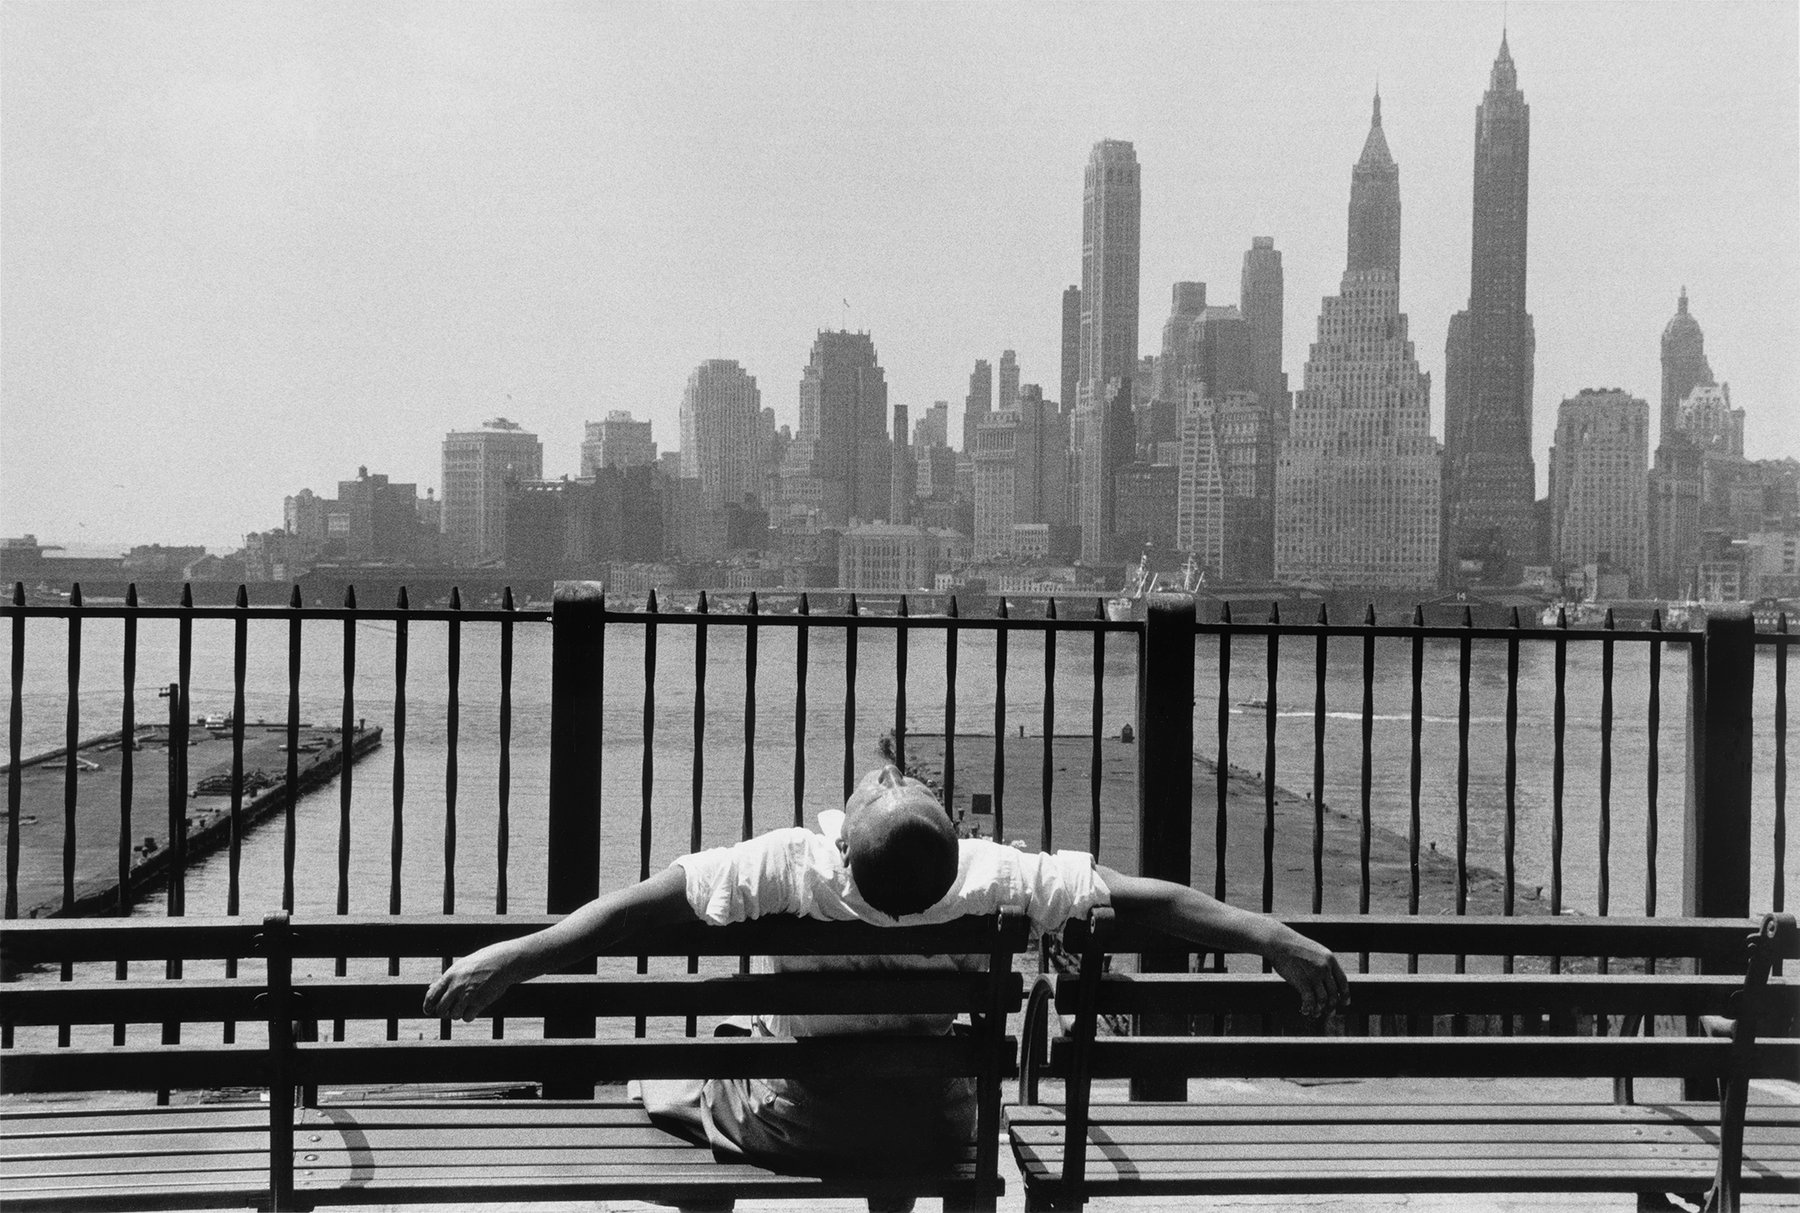 A man sitting on a bench with both of his arms behind it in front of manhattan skyline